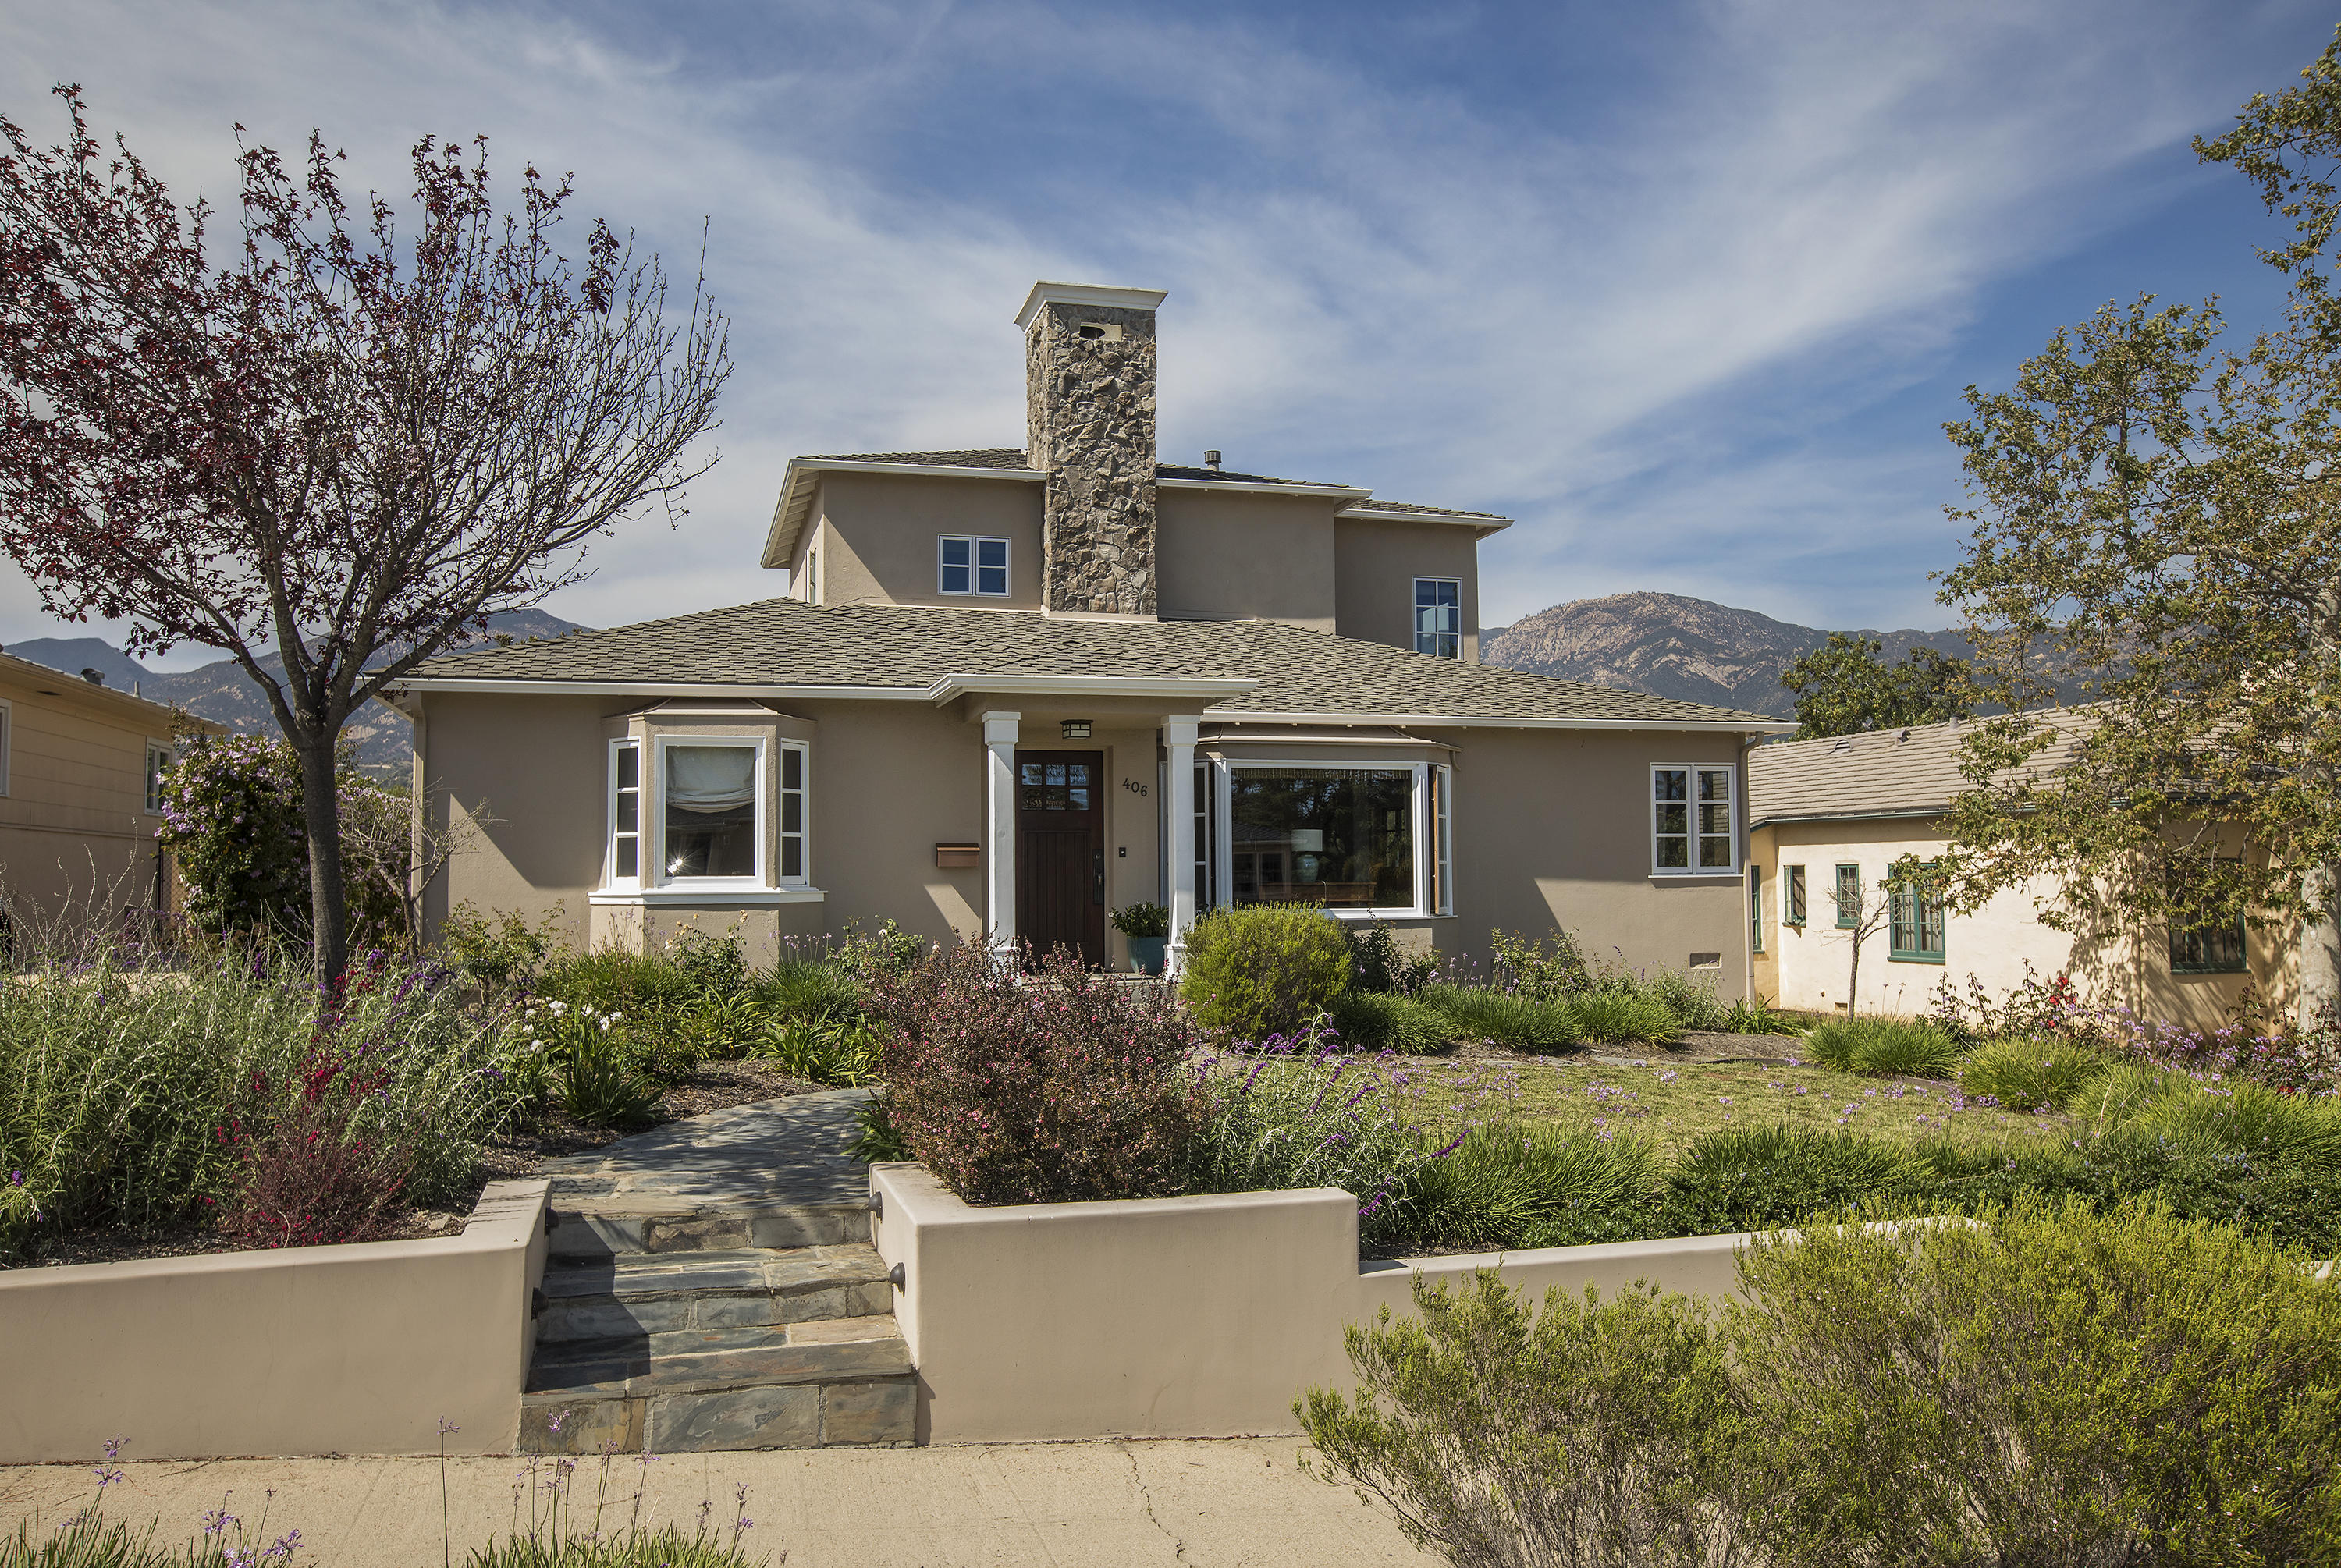 Property photo for 406 Stanley Dr Santa Barbara, California 93105 - 18-1633